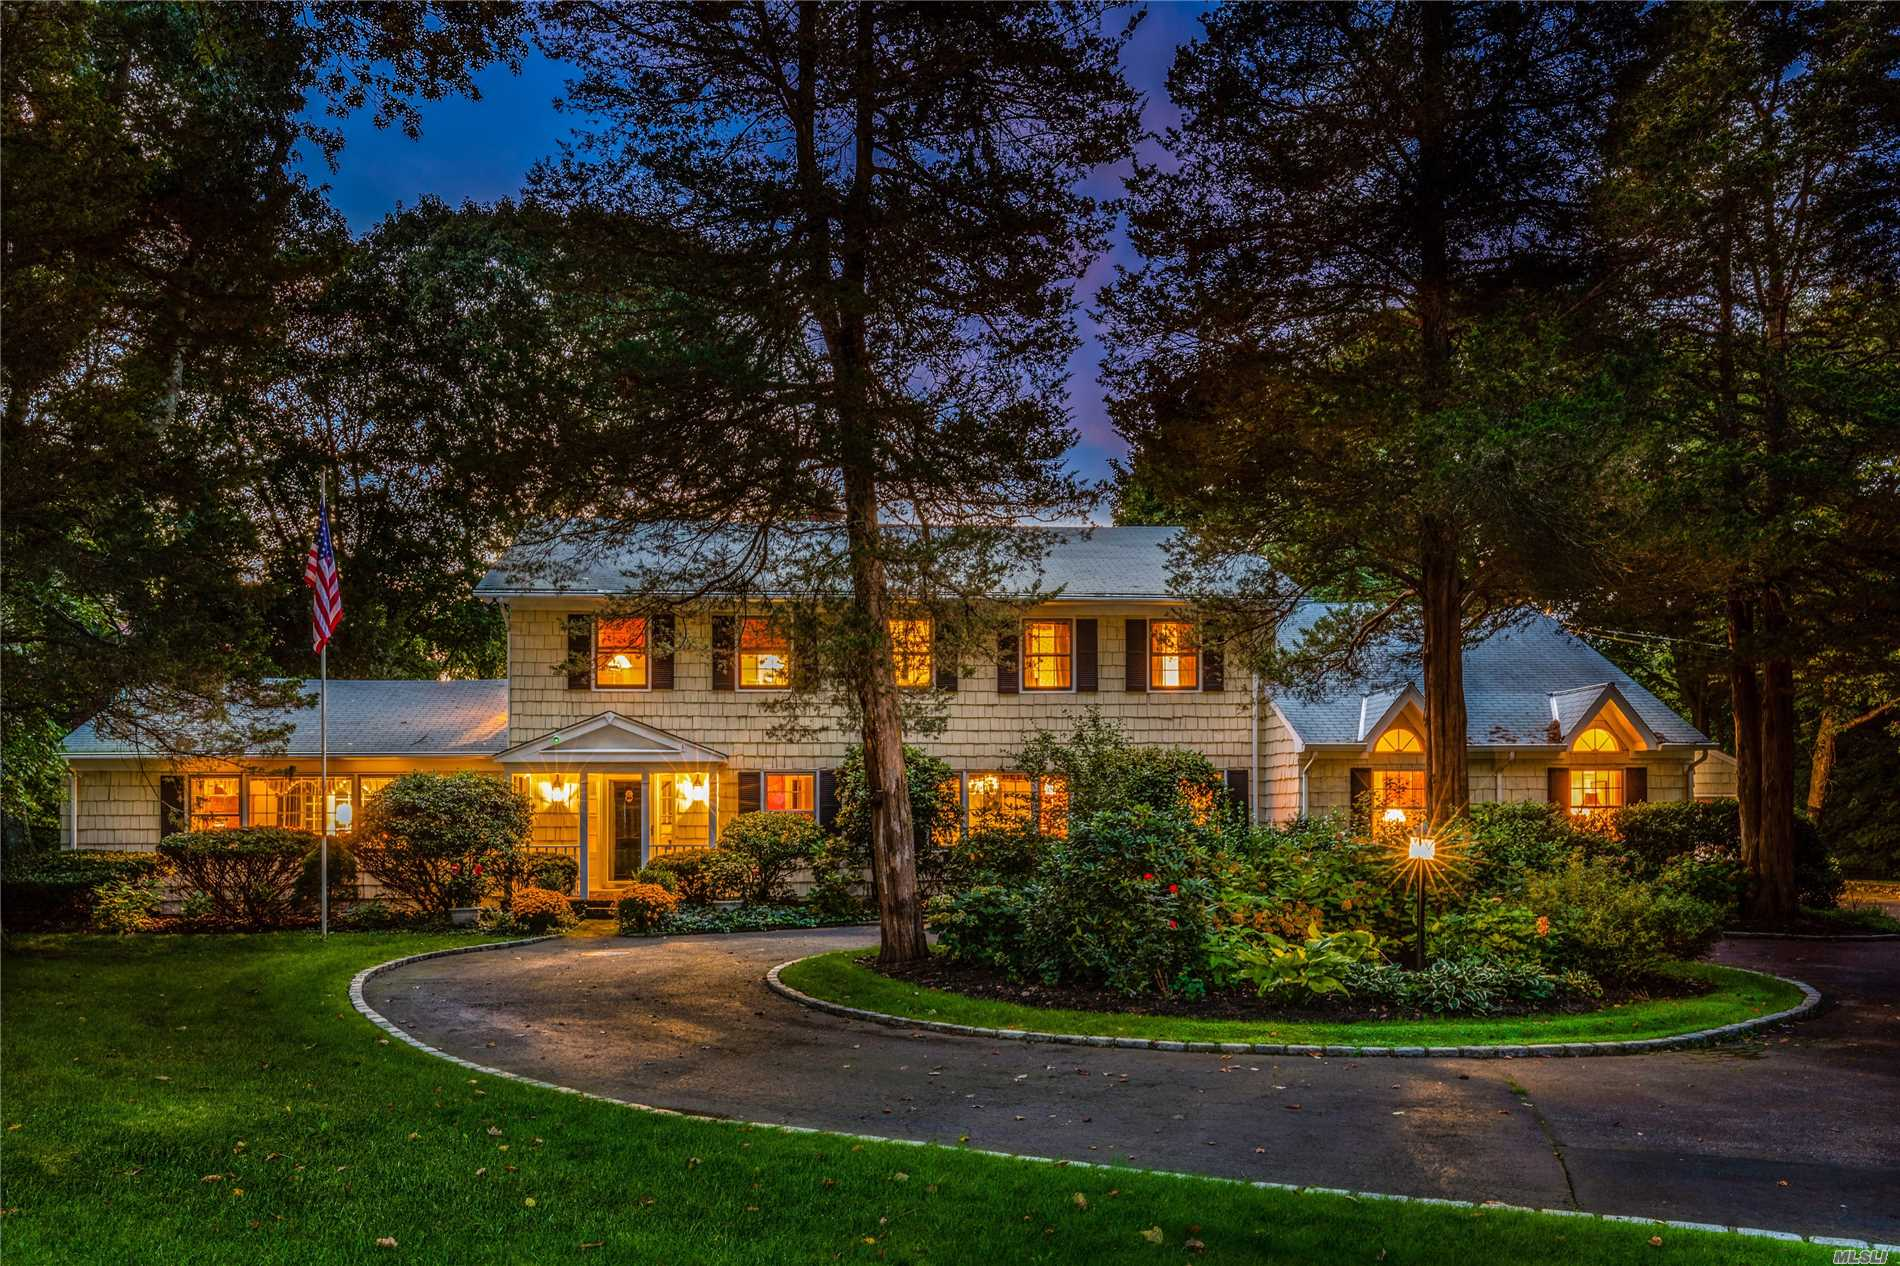 Sited On 2 Serene Brookville Acres, This 4100Sf Center Hall Colonial Sets A Comfortable & Homey Stage For Gracious North Shore Living. Surprisingly Spacious, This Home Features A Two Story Great Room, Paneled Library, Updated Eat-In-Kitchen With Gas Cooking, Screened-In Porch, 4 Fireplaces, 1st Fl Guest Suite & 4 Bedrooms On The 2nd Level. Amazing Outdoor Entertainment Space With A Large Deck Leading To Gunite Pool & Lush Landscaping. 2 Car Xl Garage. Top Location, Near Highways & Shopping.